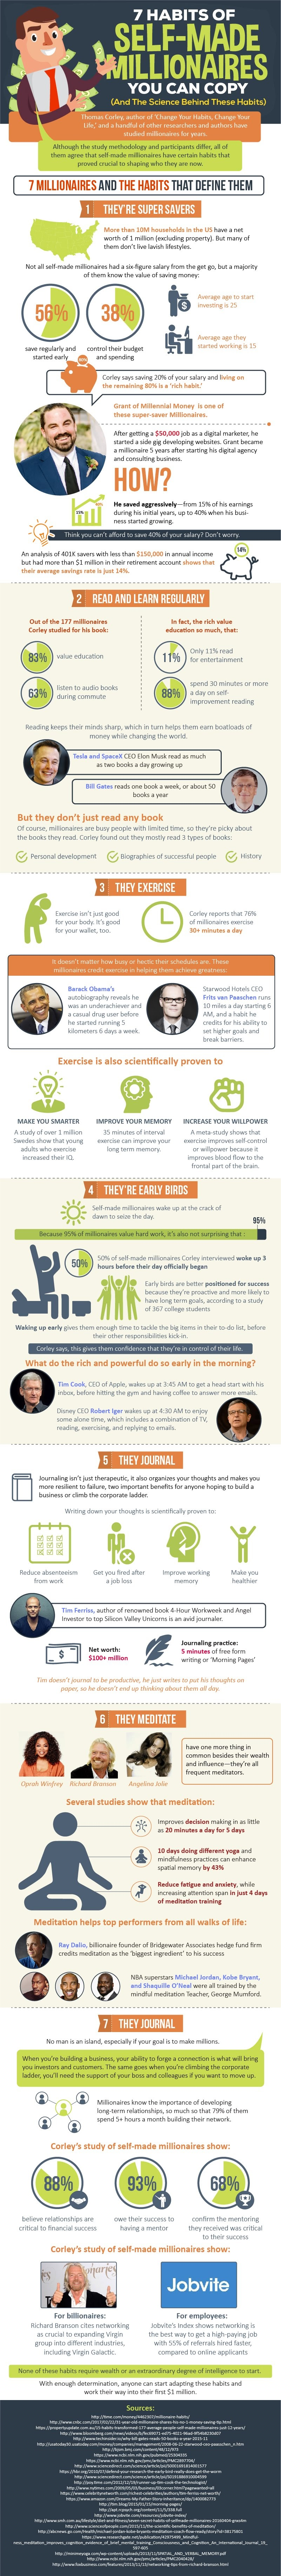 7 Habits Of Self-Made Millionaires You Can Copy (And The Science Behind These Habits) - #infographic